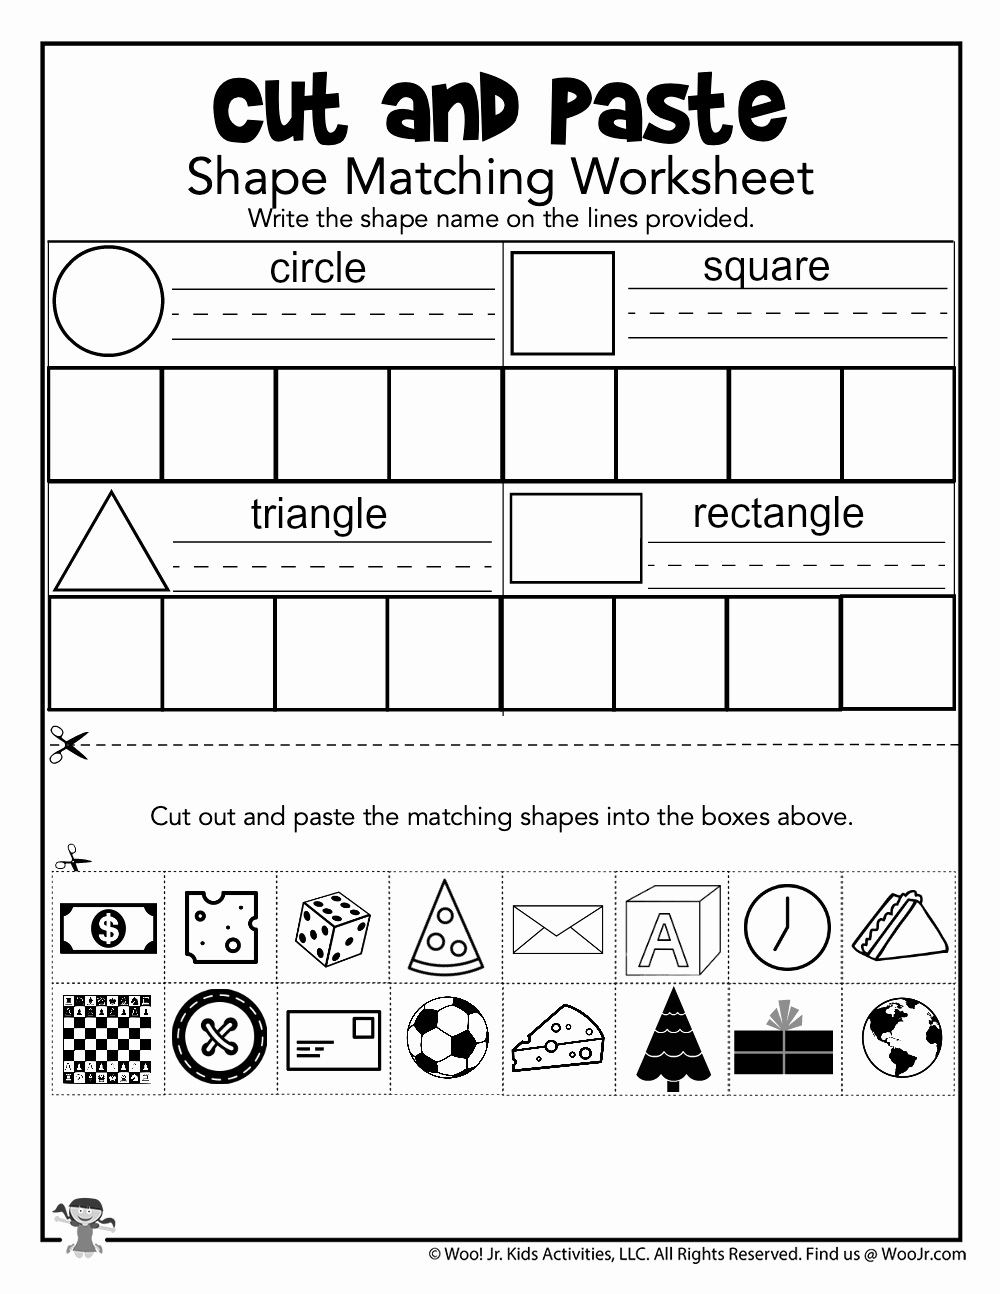 Kindergarten Cut and Paste Worksheets Beautiful Cut and Paste Shape Matching Practice